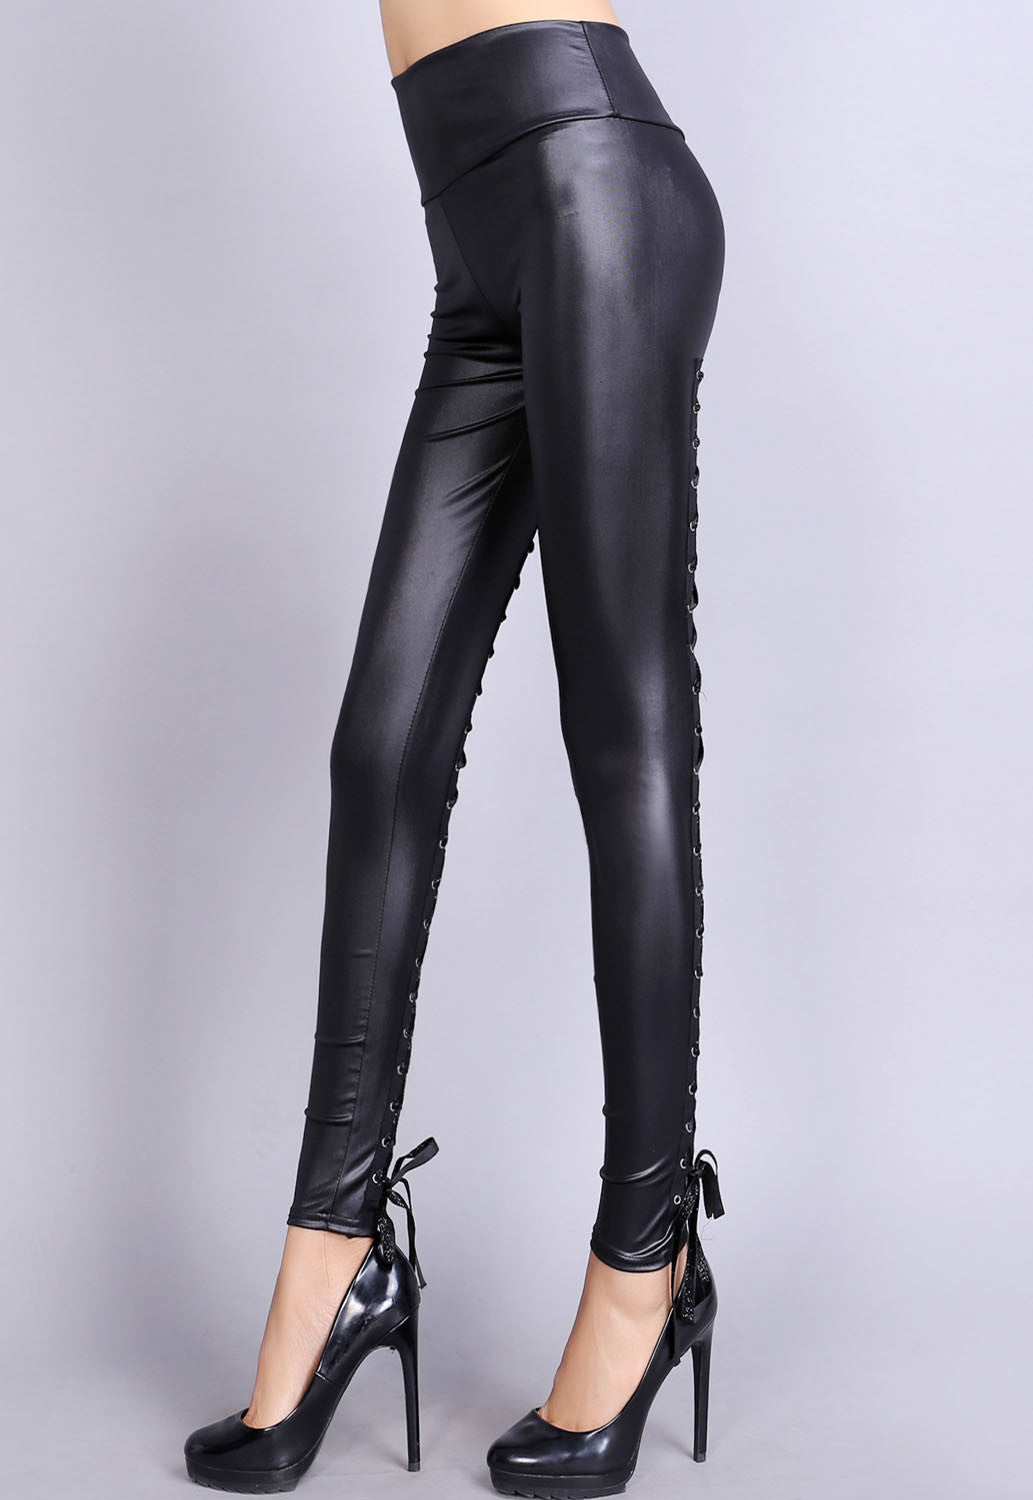 Her Black Contrast Lace-Up Back Stretch Leather Leggings